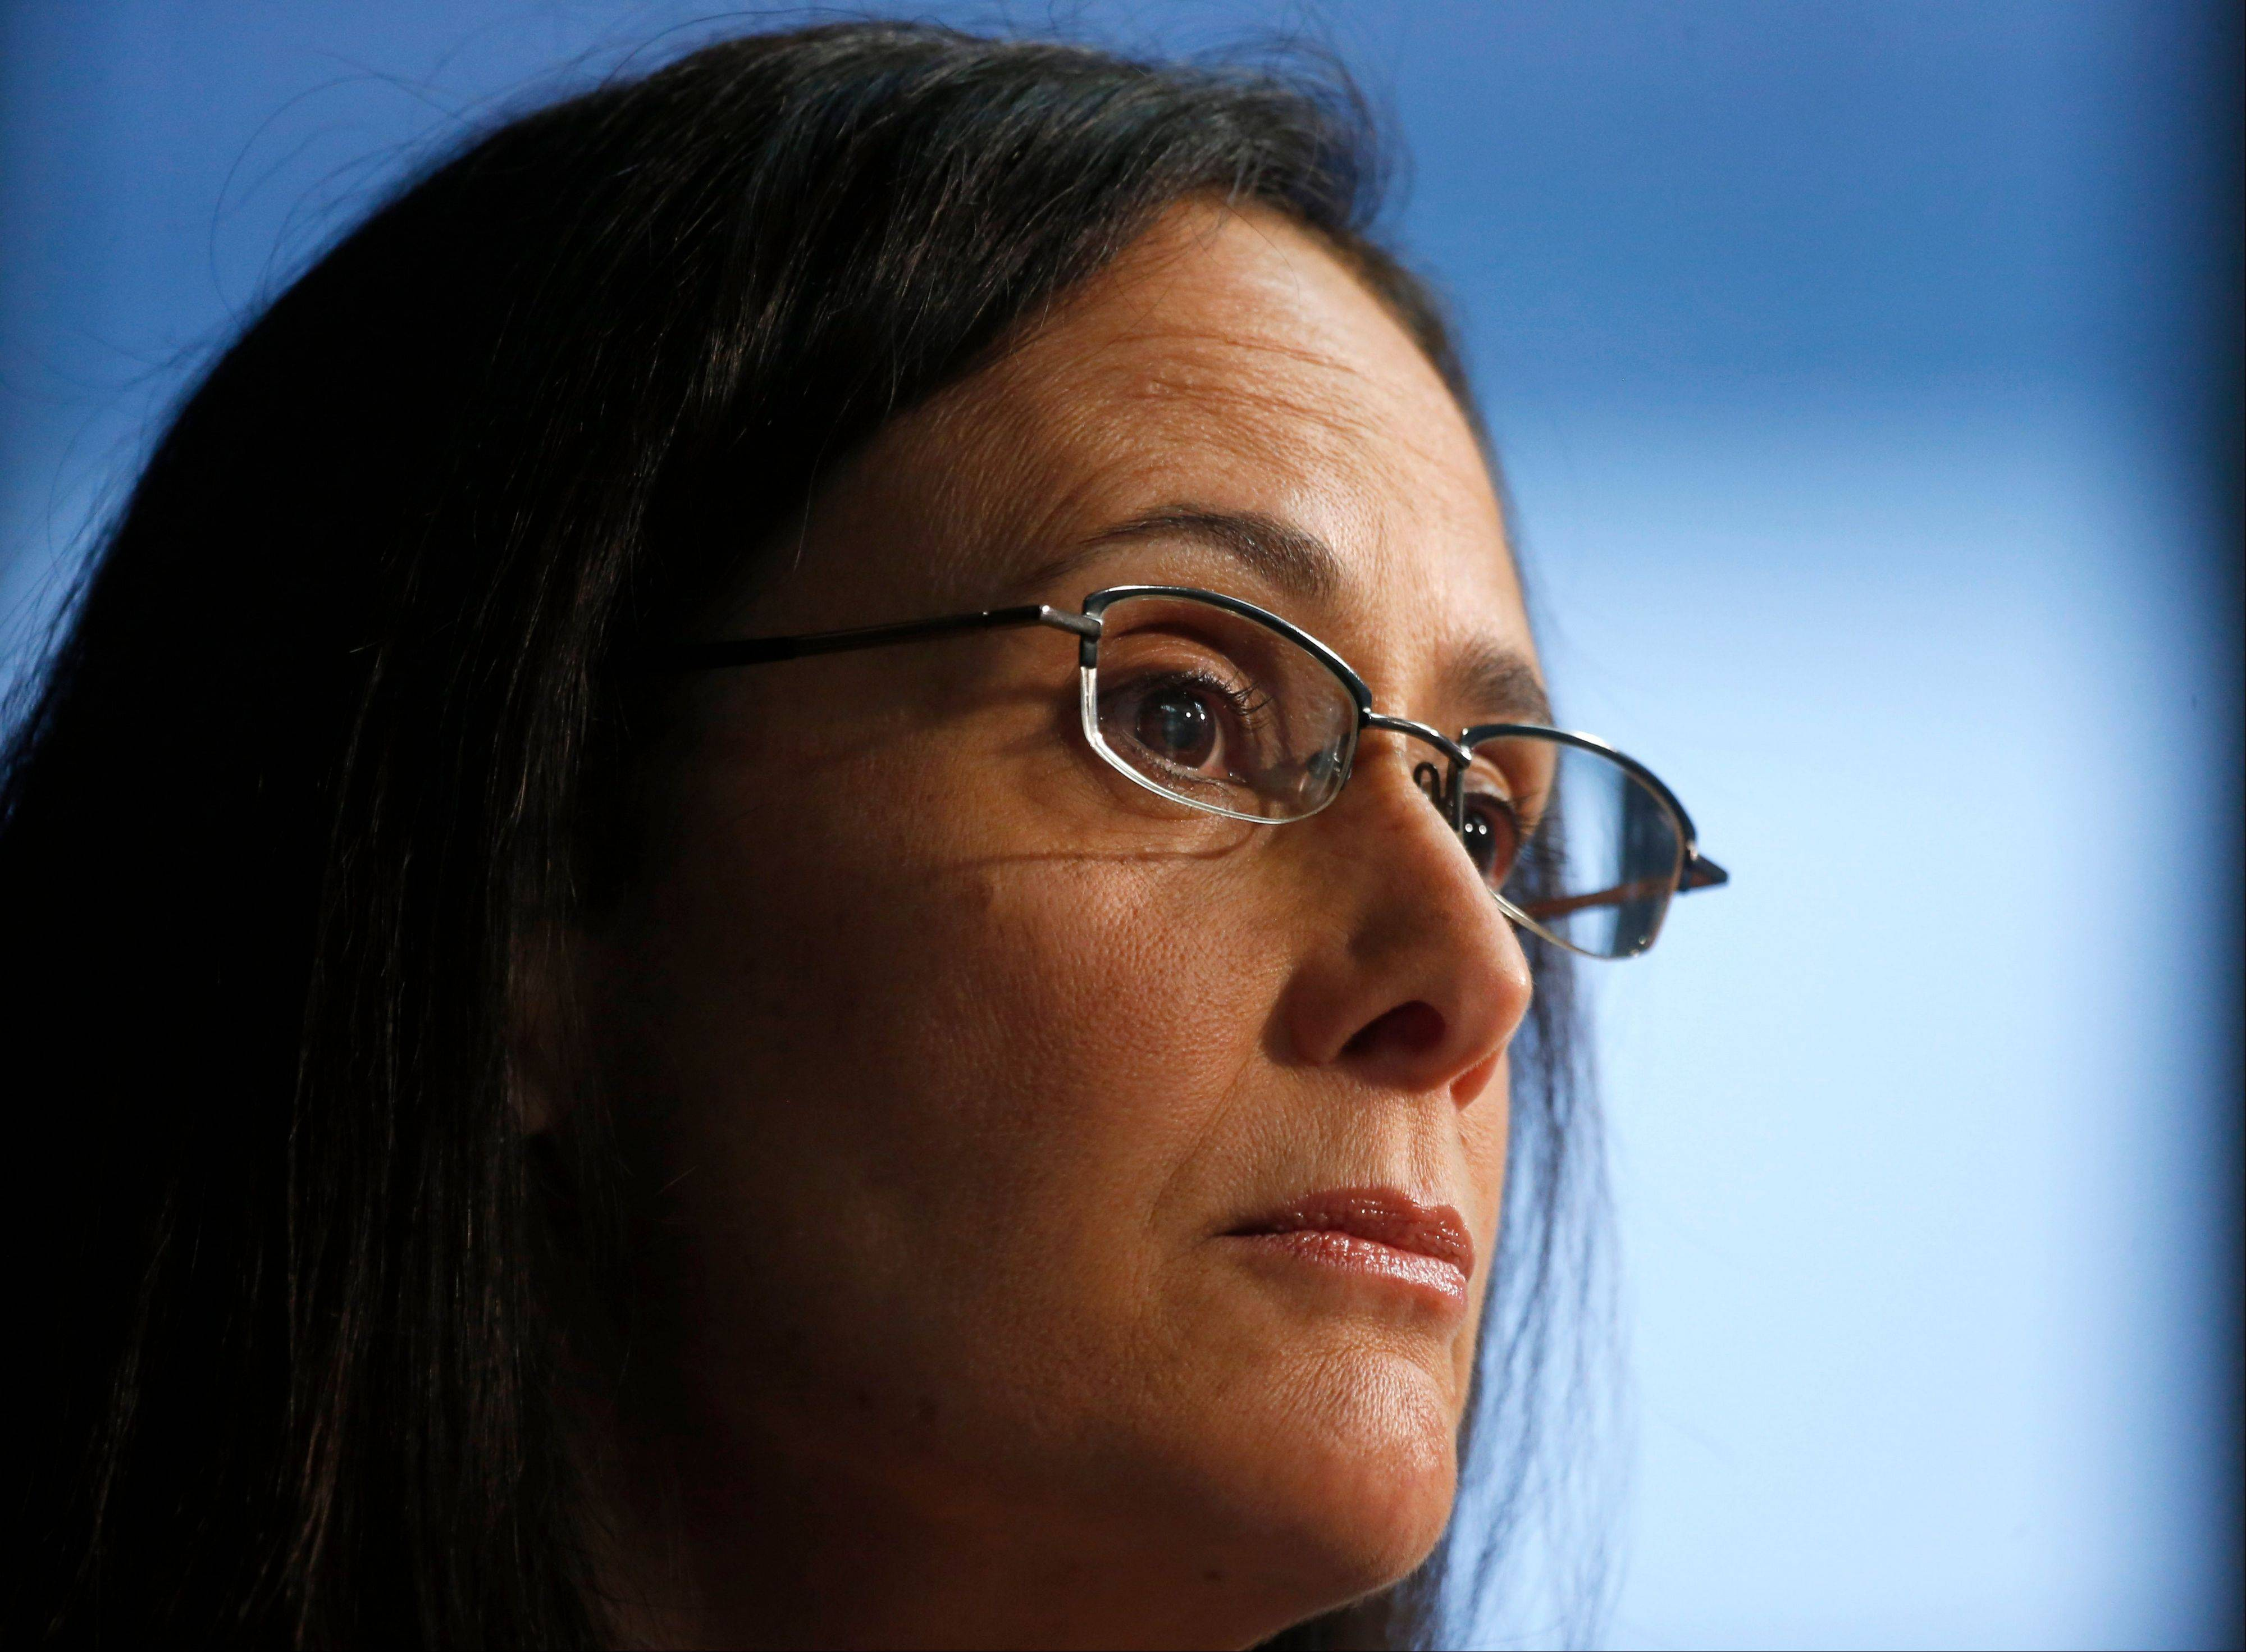 Illinois Attorney General Lisa Madigan at a news conference Wednesday declined to discuss what conversations, if any, she had with her politically powerful father before deciding not to run for governor.